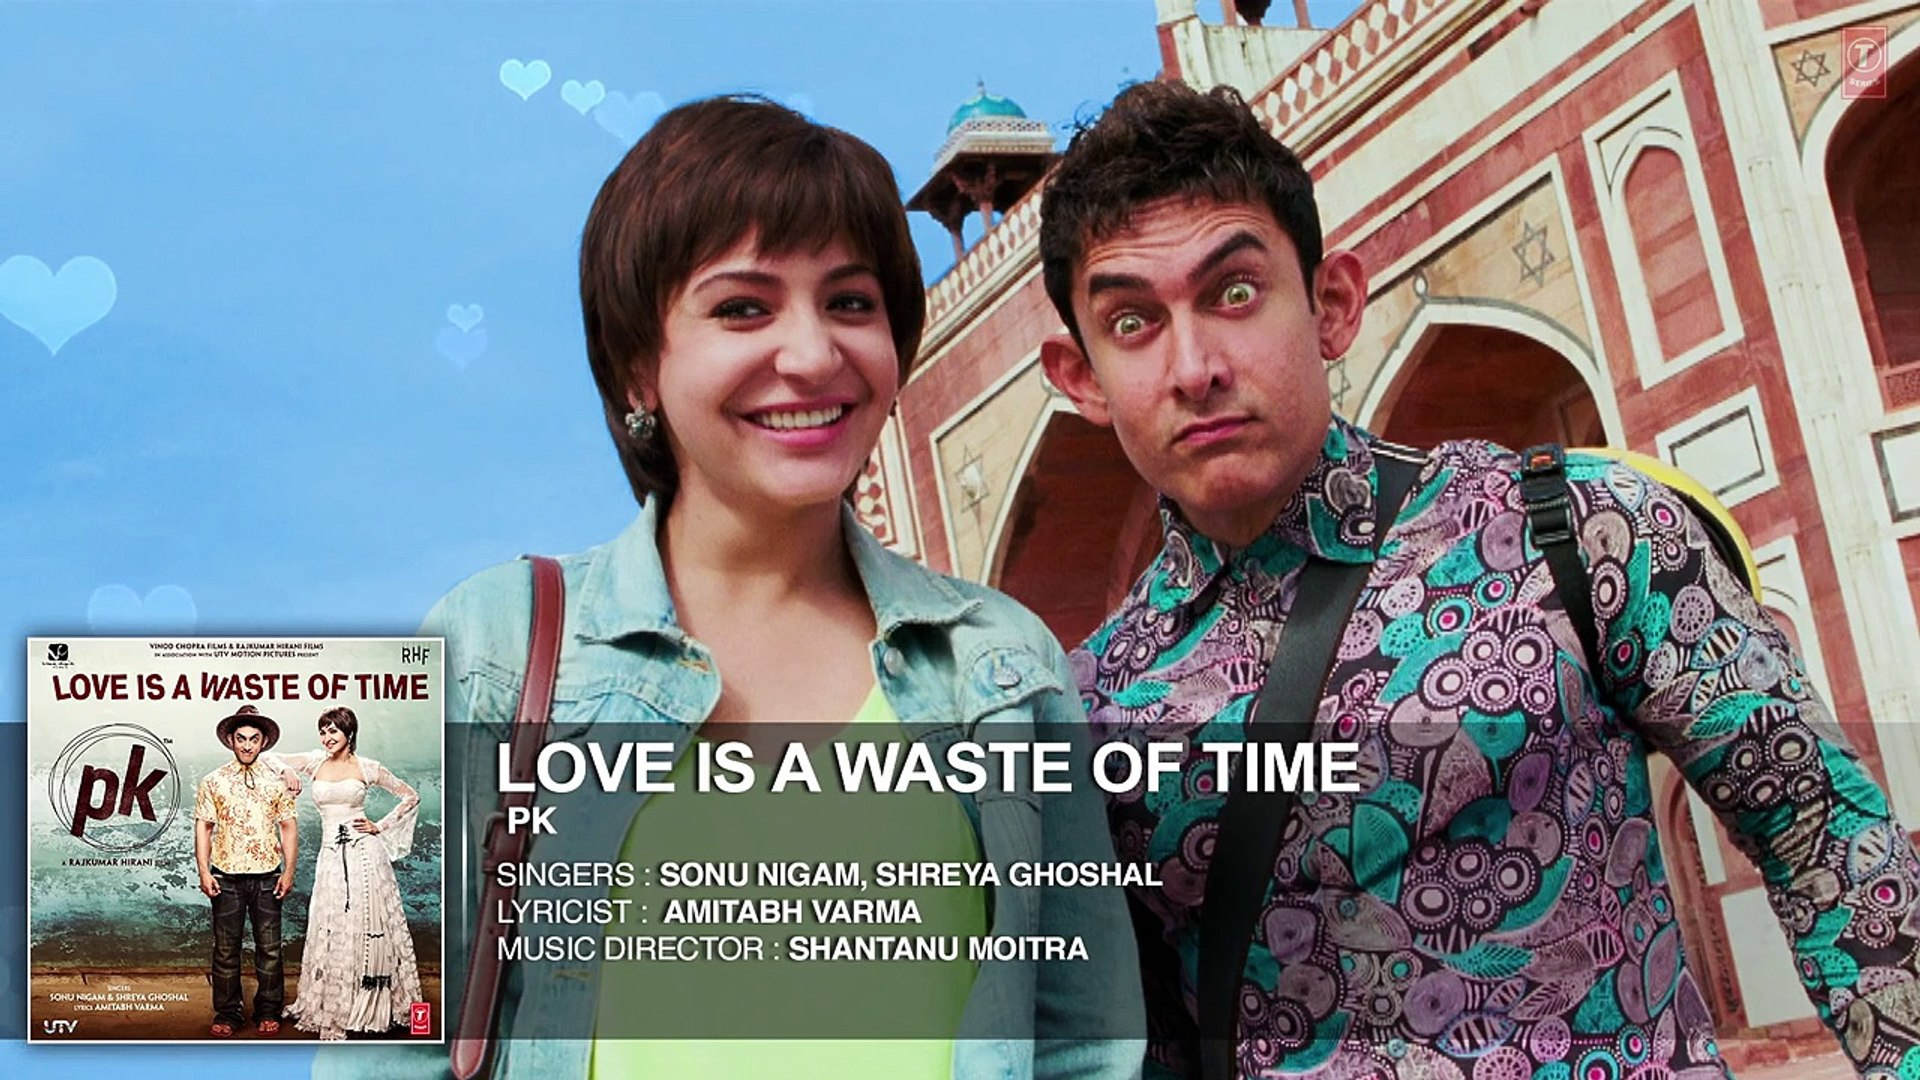 Love is waste of time mp3 download